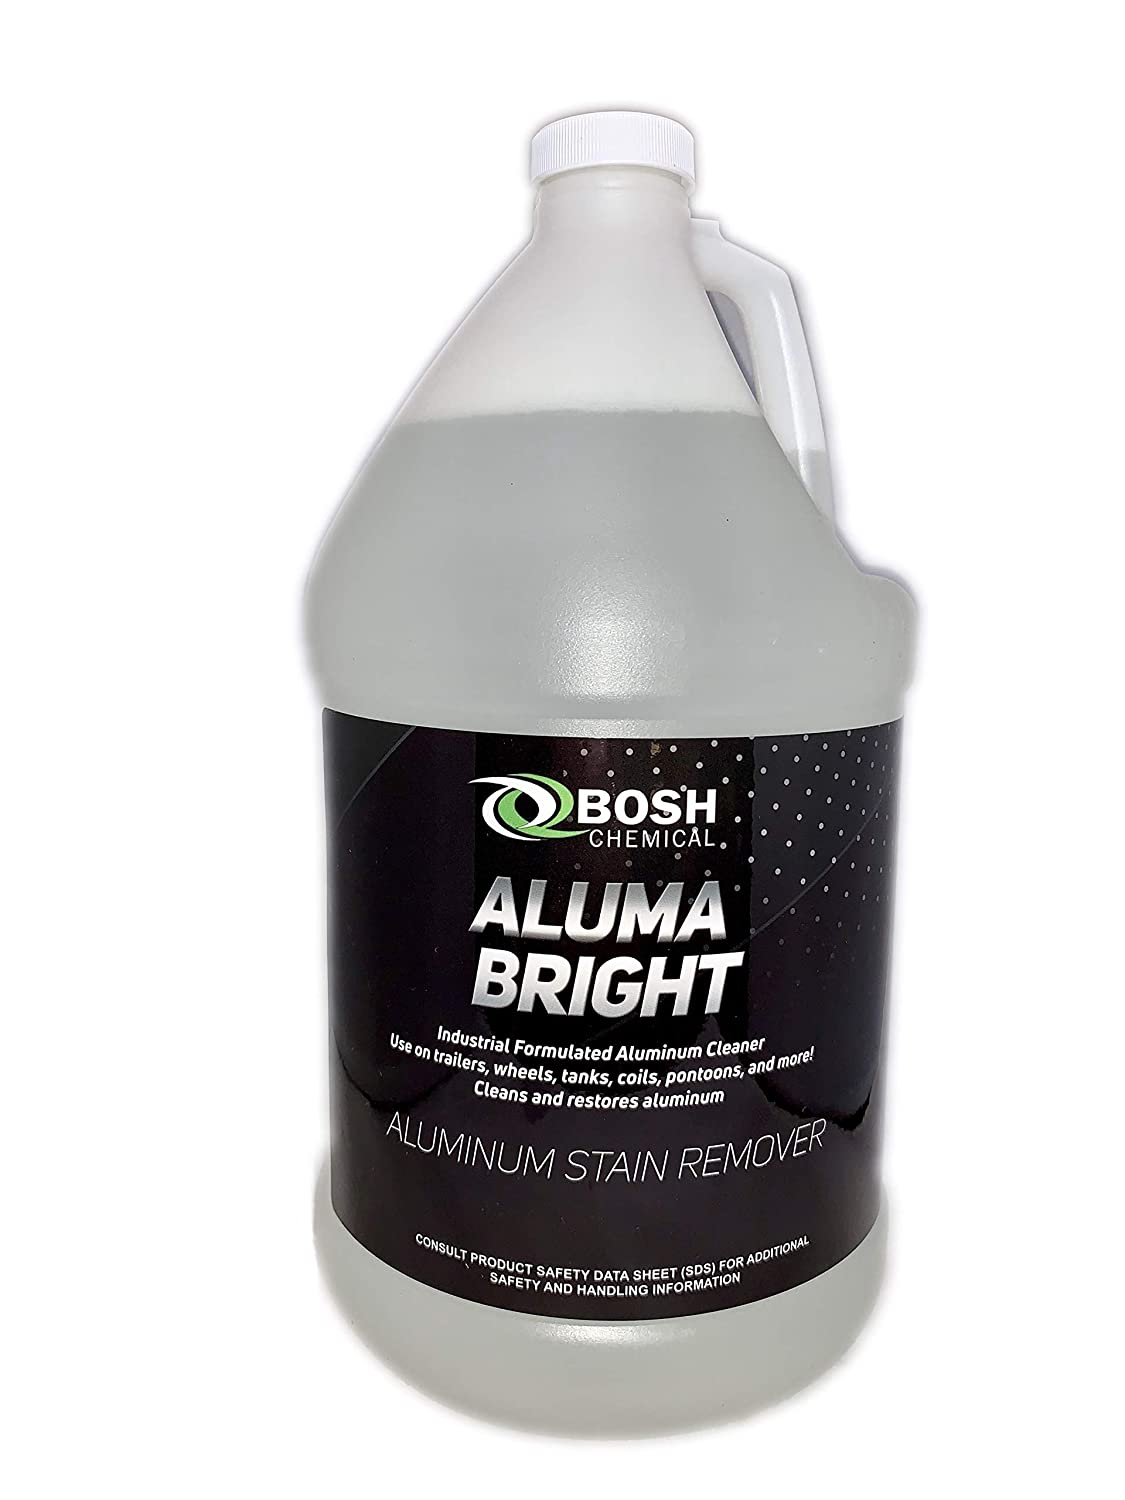 Aluma Bright, Aluminum Cleaner and Brightener, 1 Gallon Concentrate